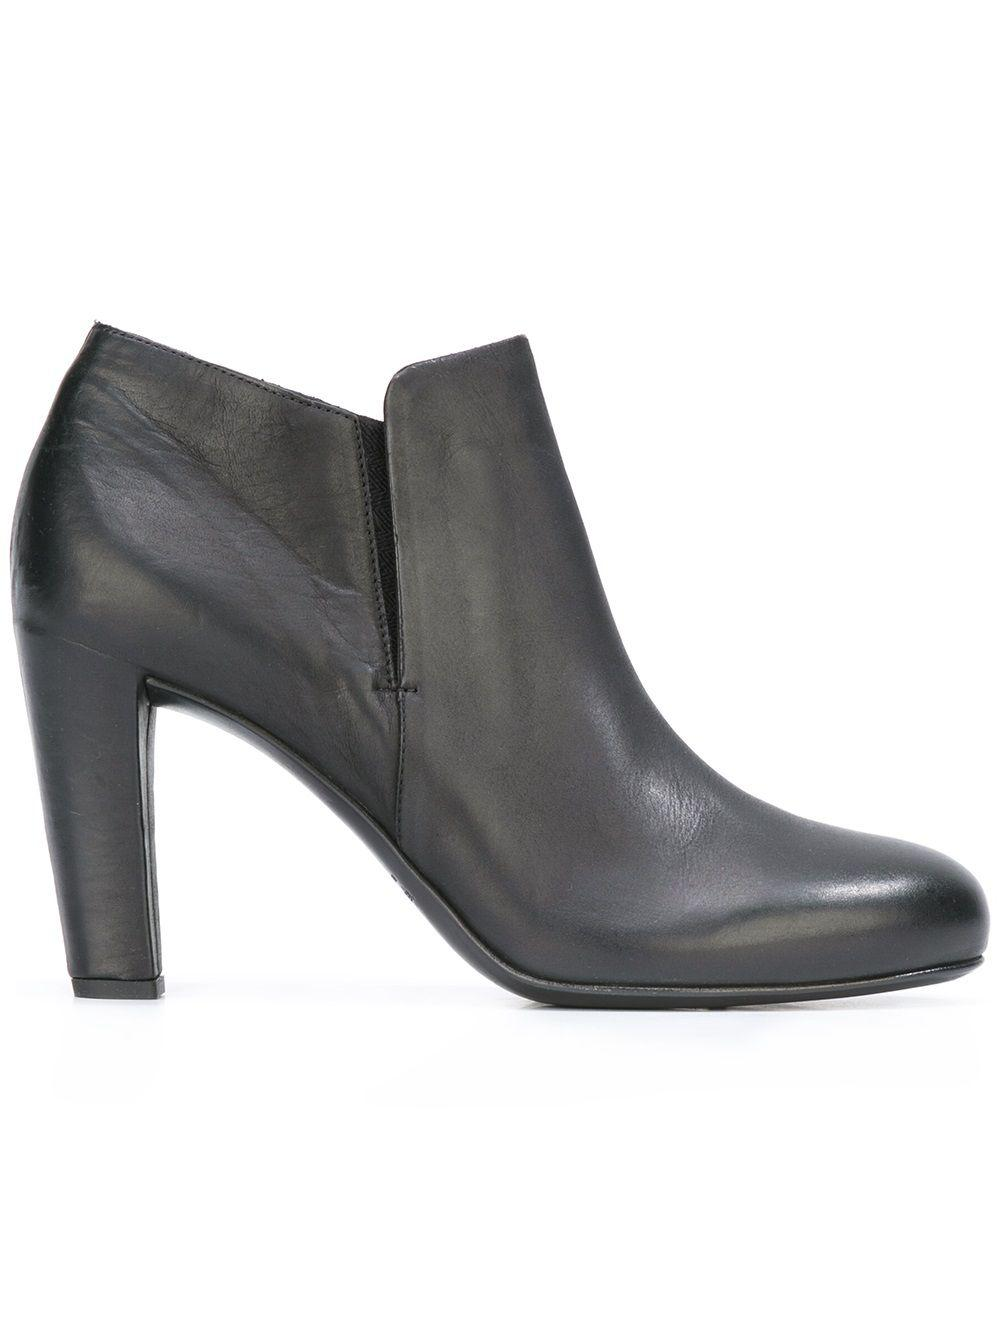 Roberto Del Carlo Leather Ankle Boots in Black (Natural)